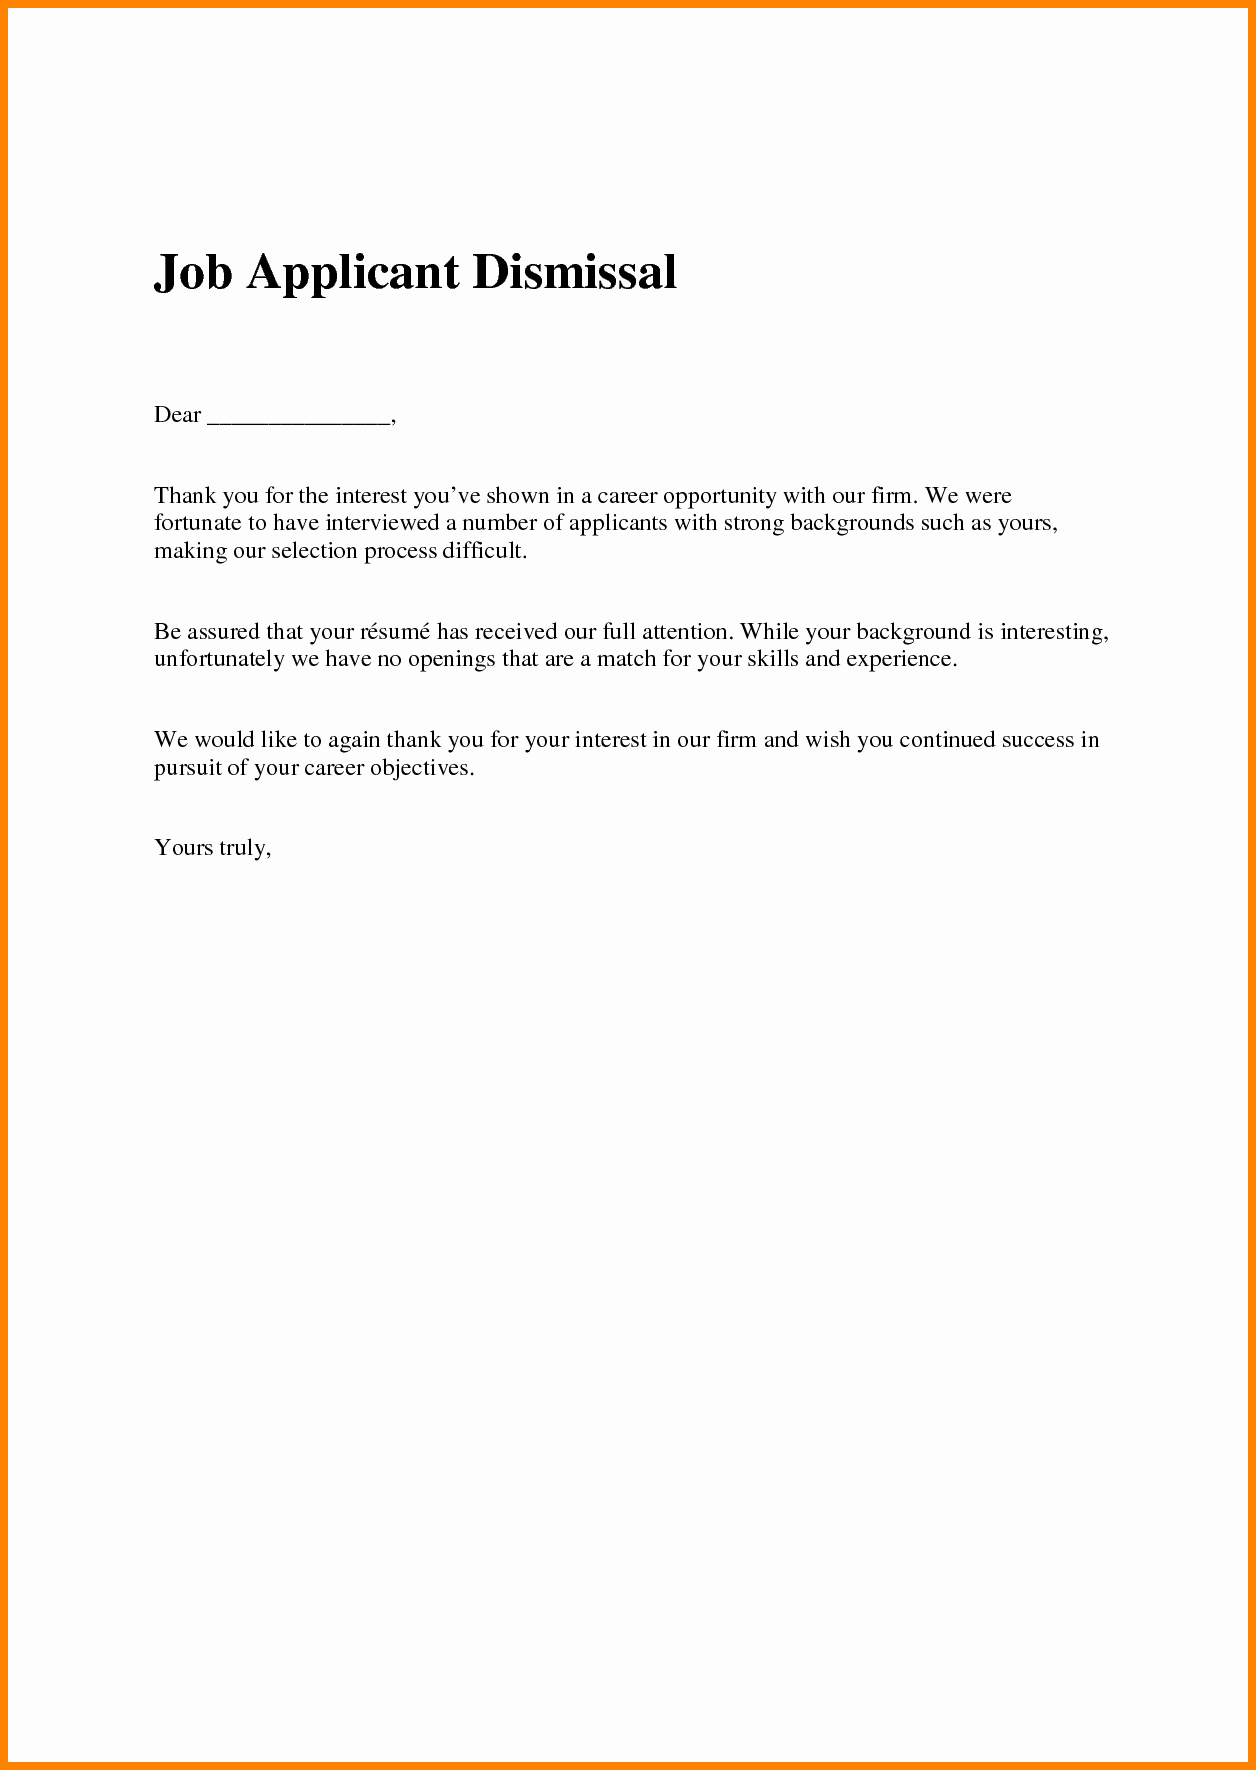 Application Rejection Letter Template Lovely 16 Job Rejection Letter Sample to Applicant